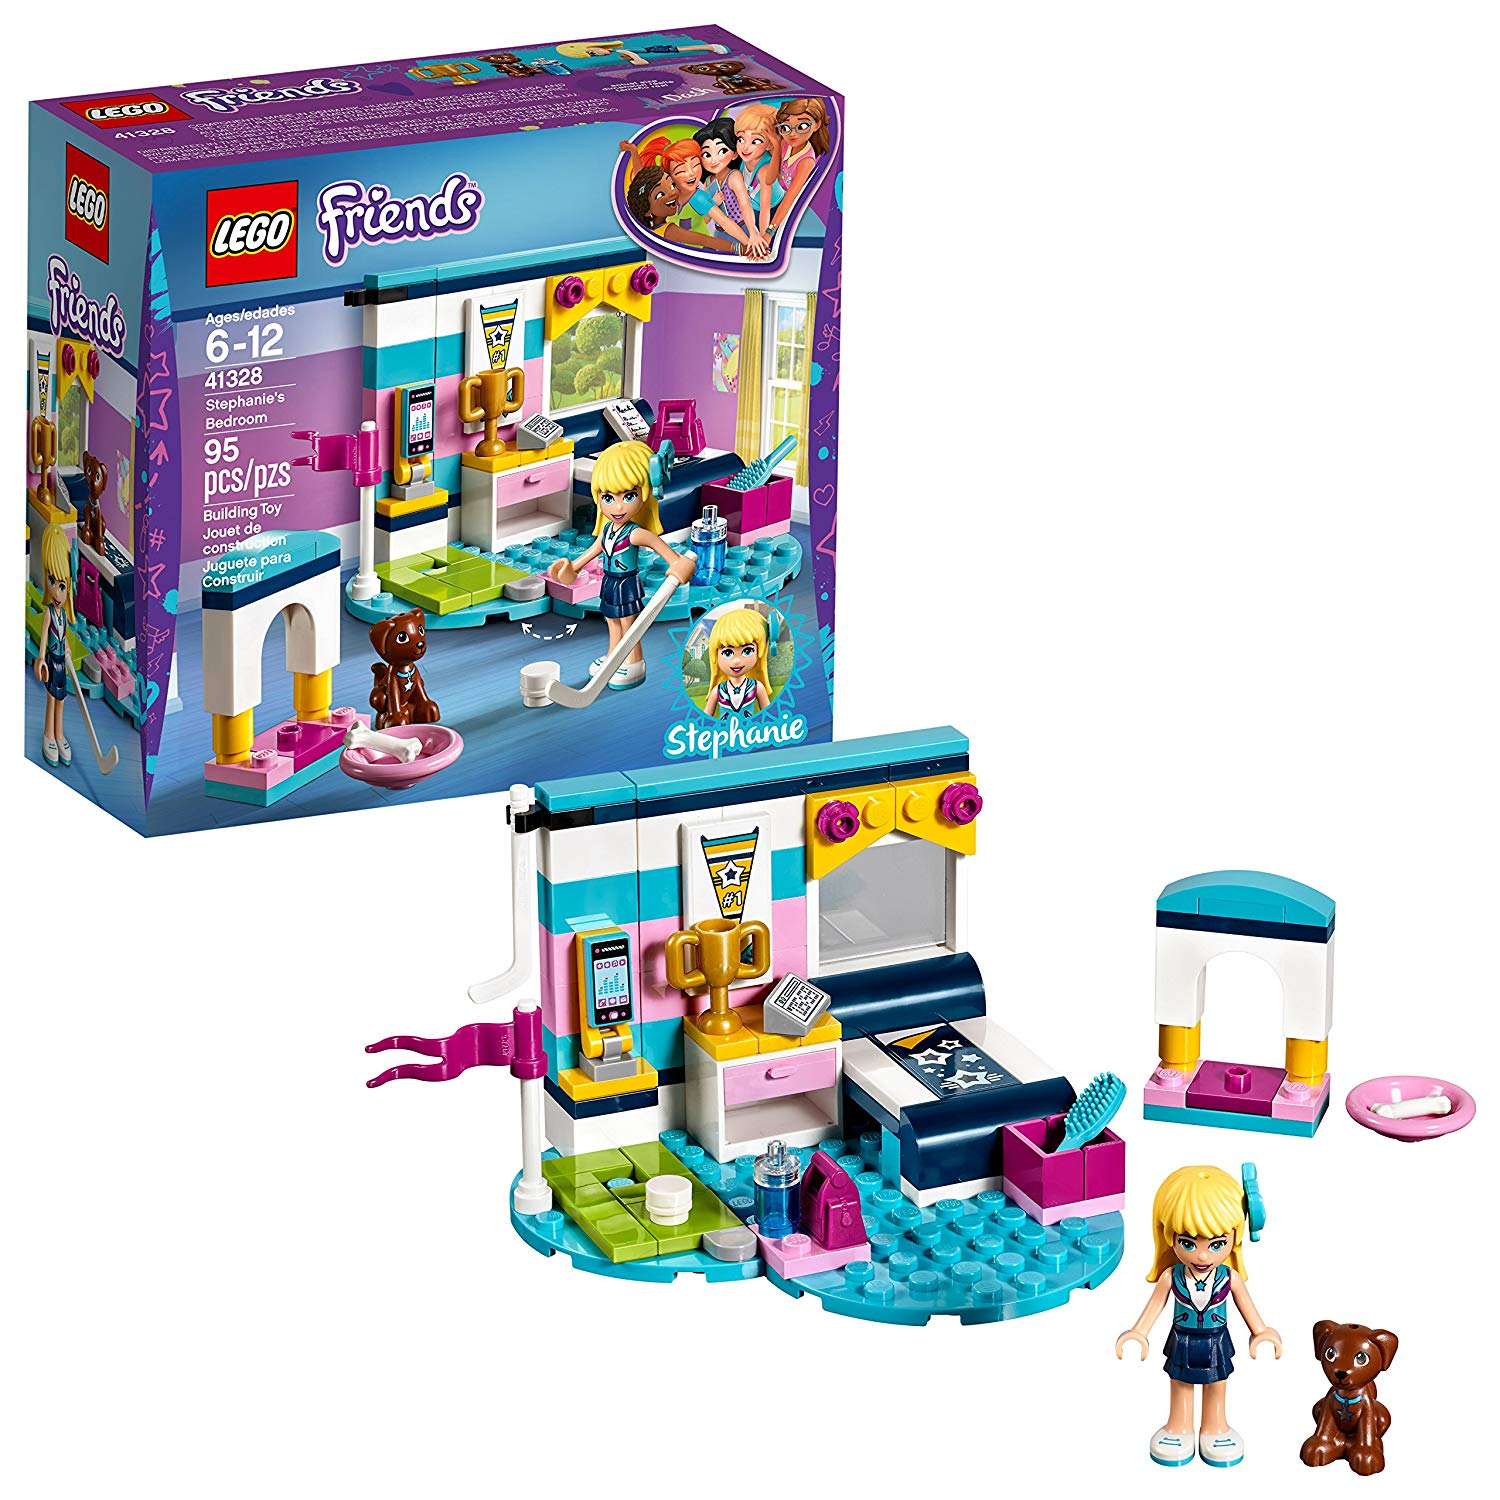 LEGO Friends Stephanie's Bedroom Building Set Only $6.99 ...